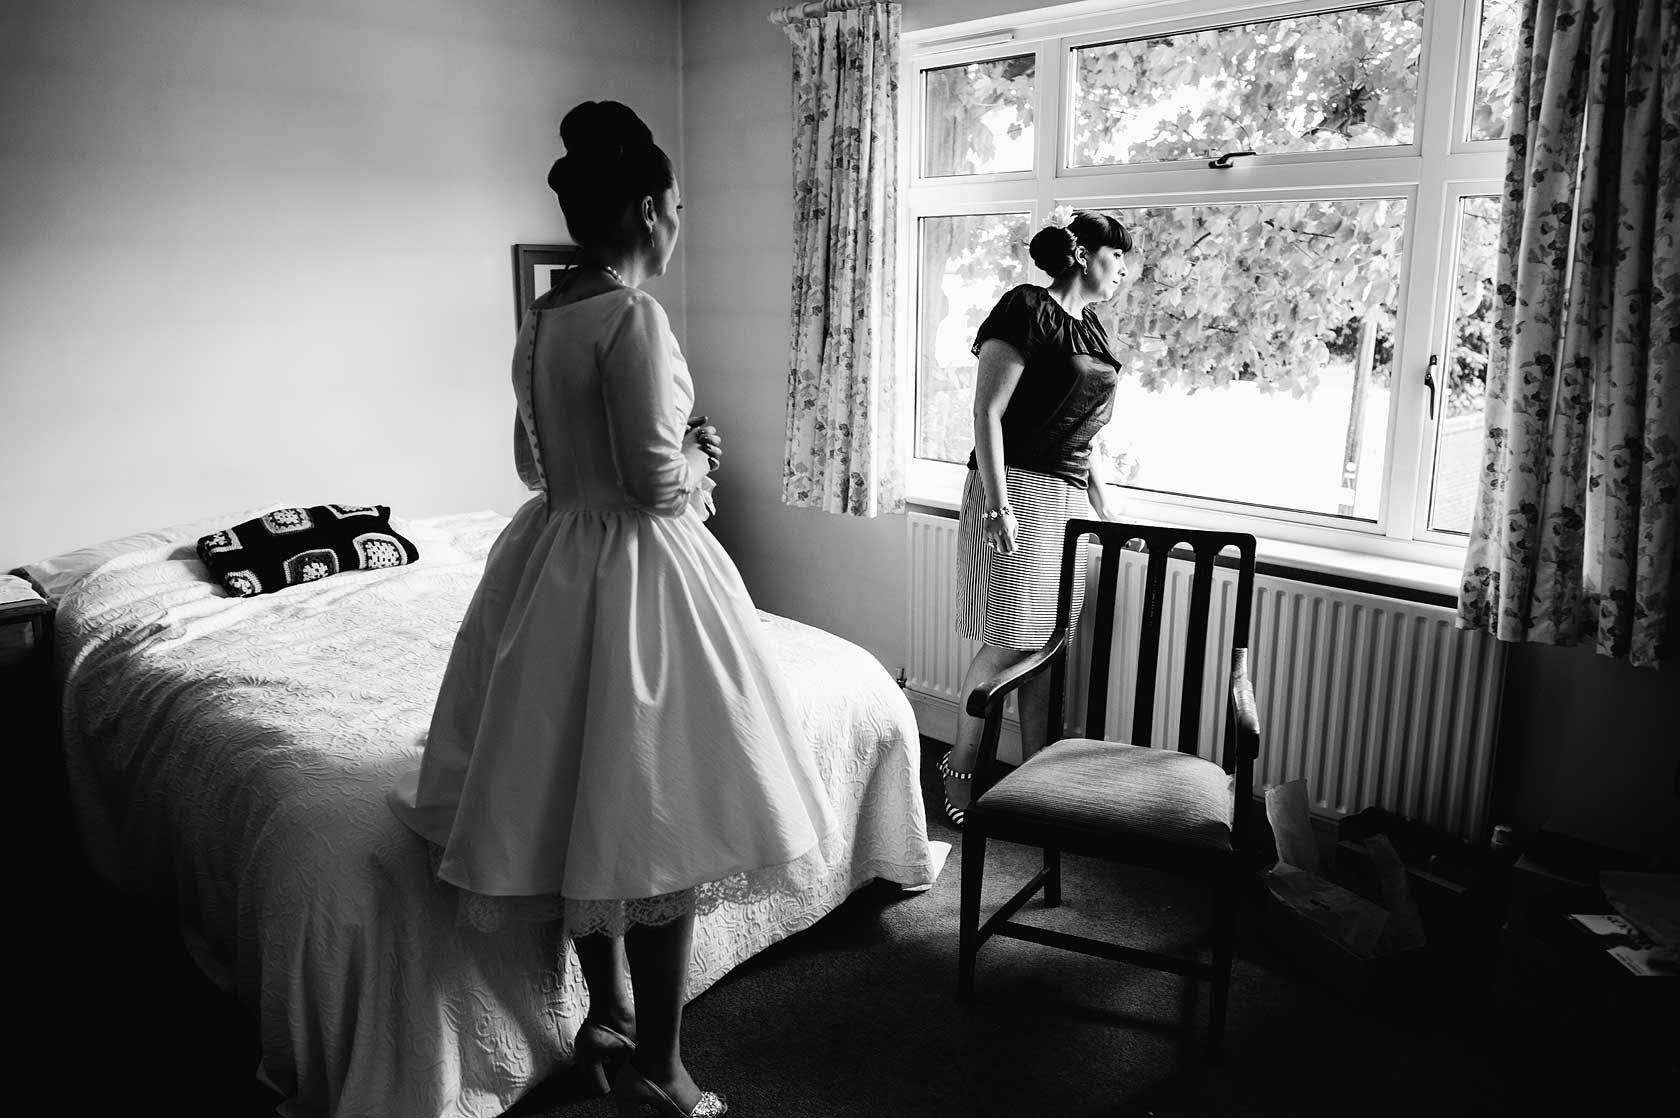 A bride and her sister await the grooms srrival